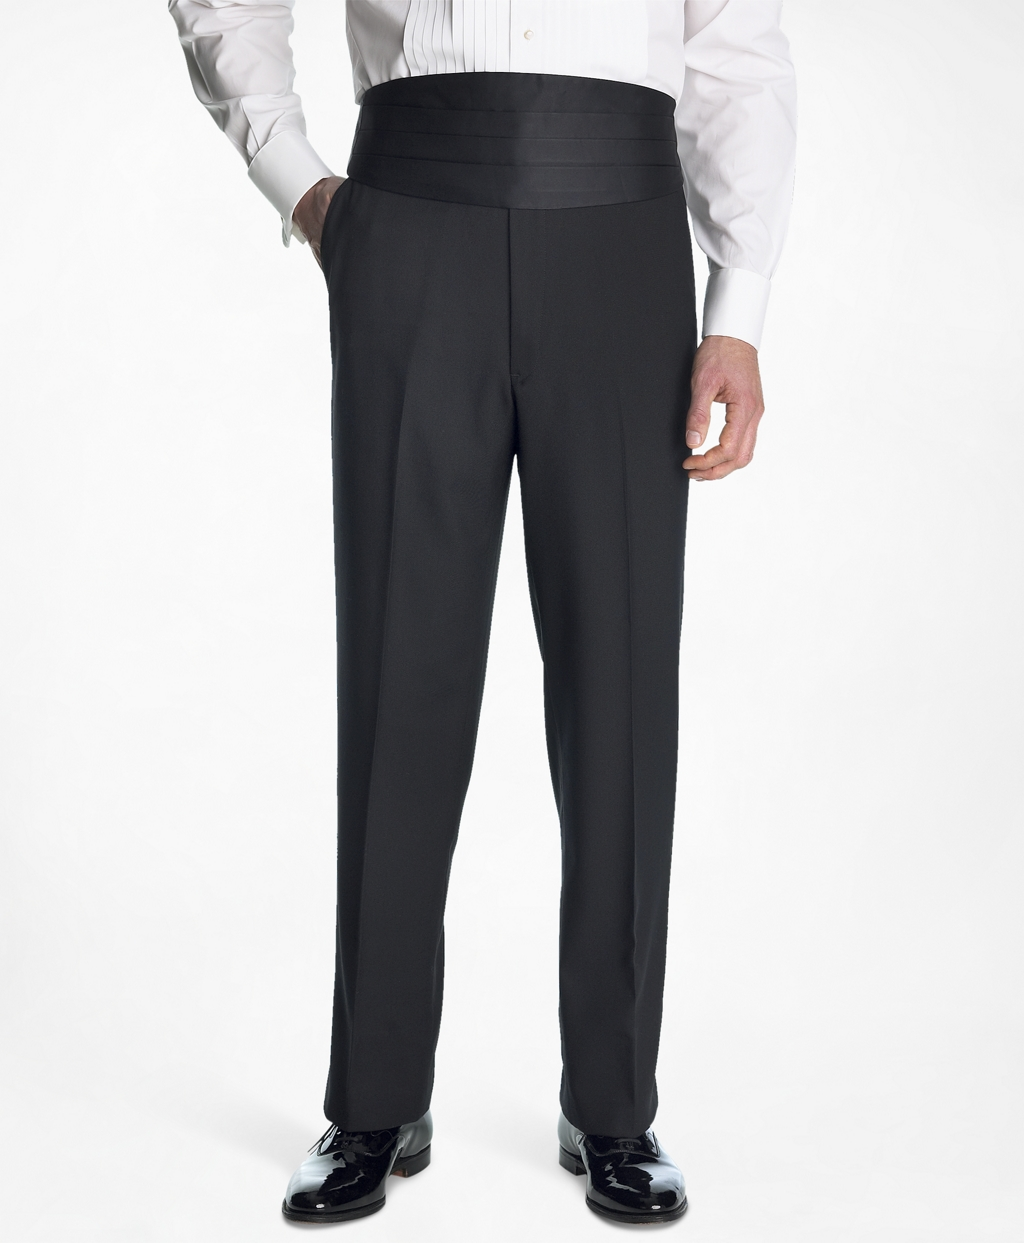 Victorian Men's Clothing, Fashion – 1840 to 1890s Brooks Brothers Mens 1818 Plain-Front Tuxedo Trousers $210.00 AT vintagedancer.com